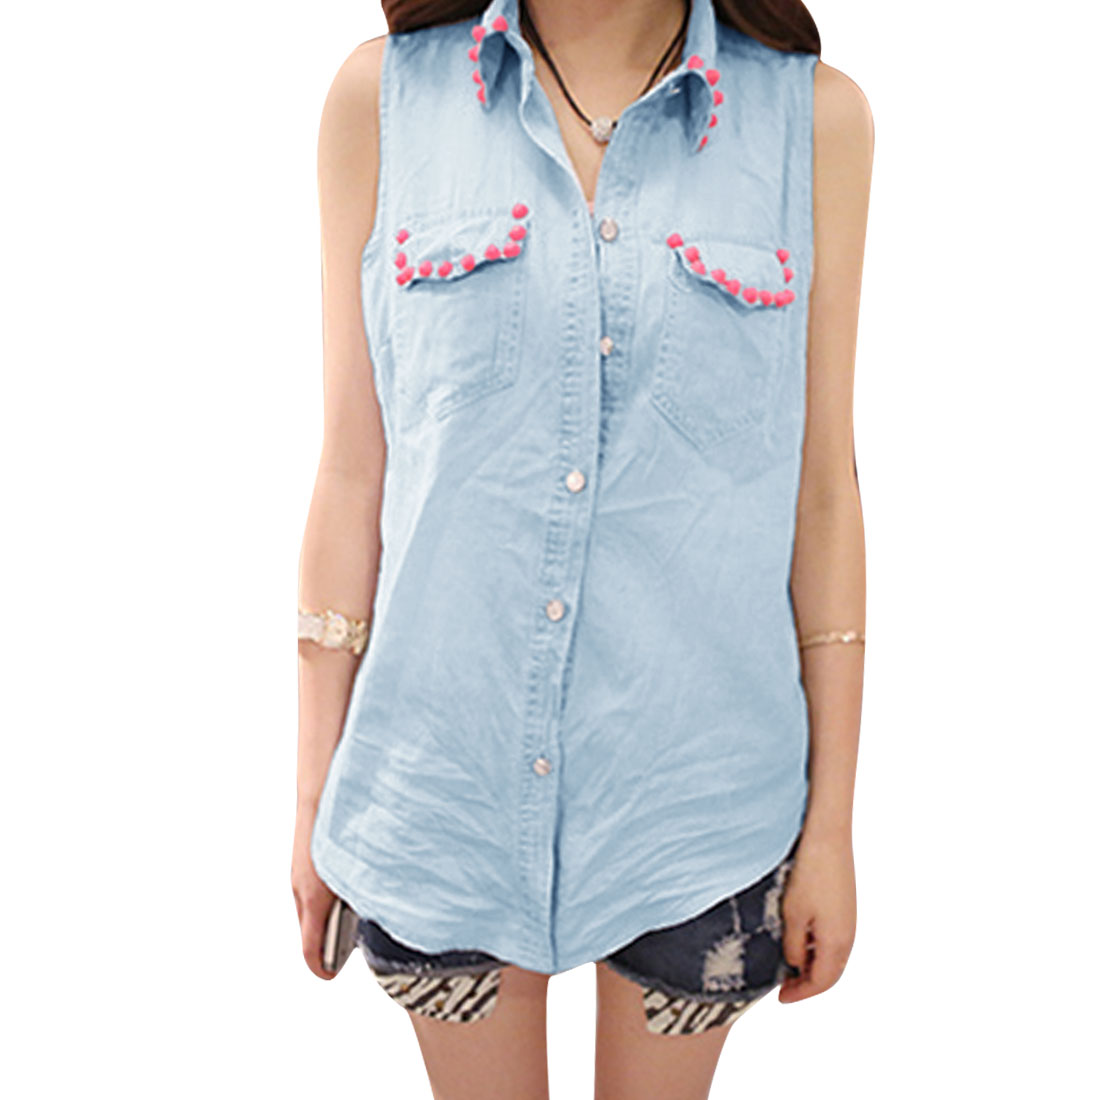 Ladies Sleeveless Design Point Collar Button Front Blouse Shirt Light Blue S